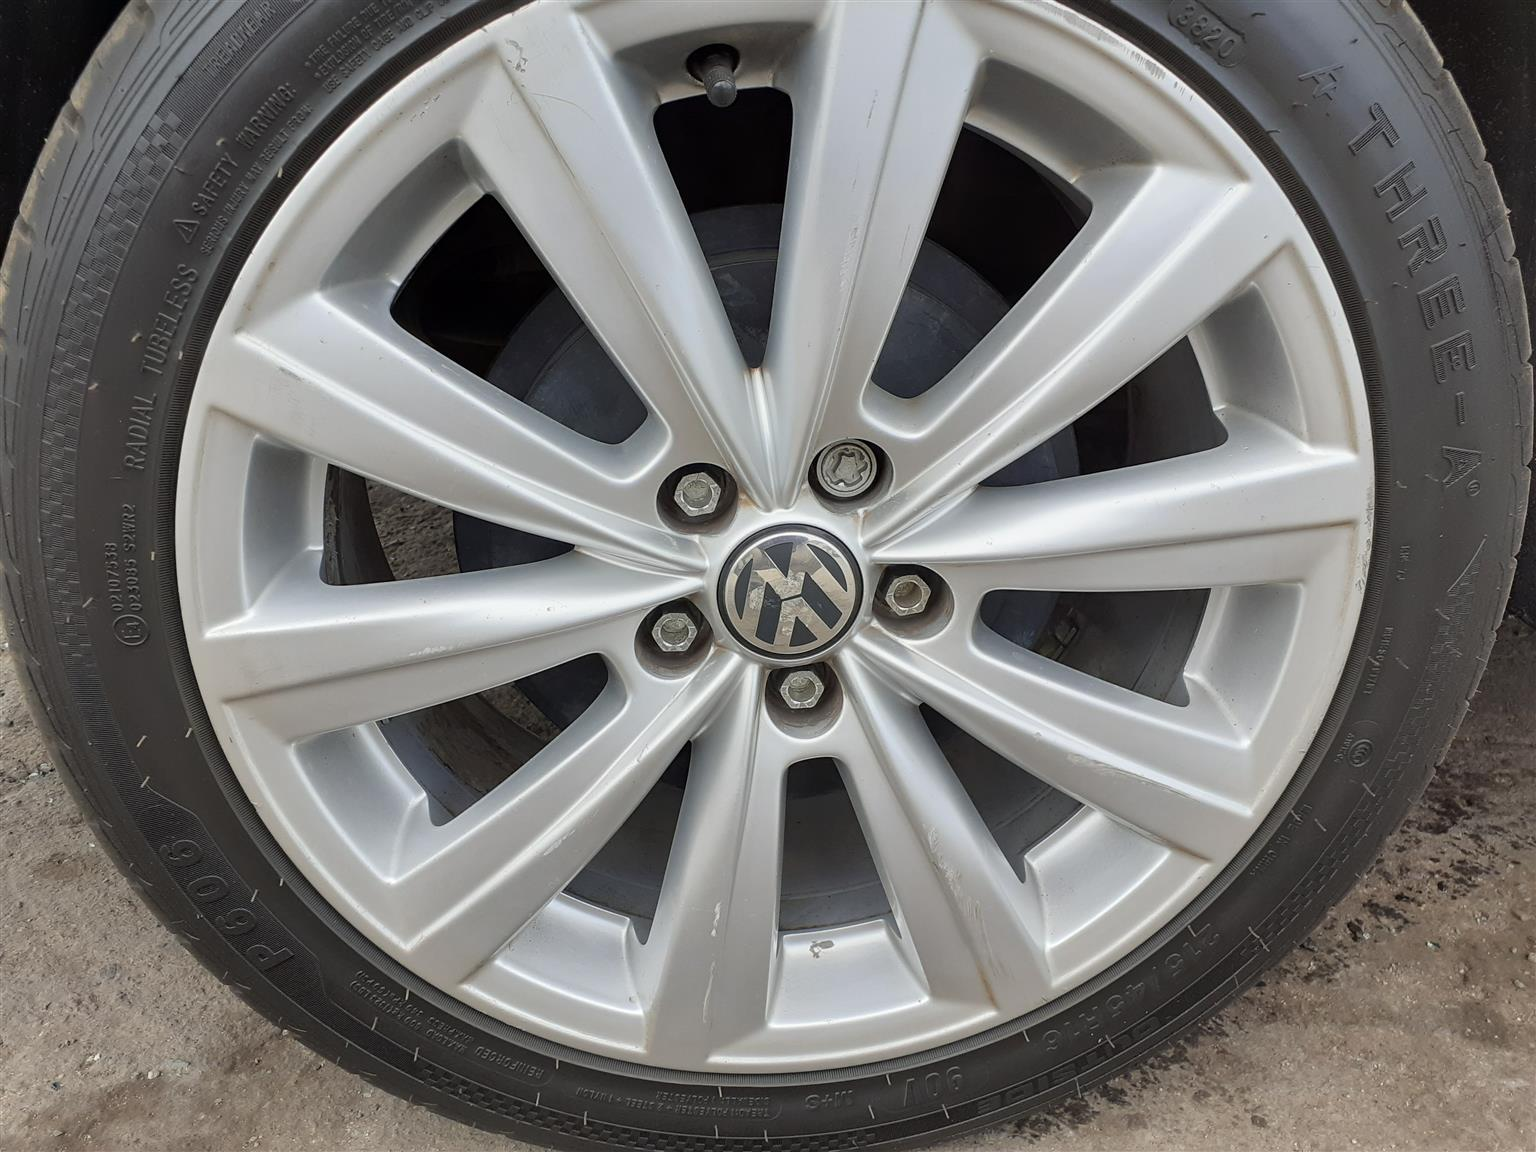 Looking for 1 rim (16 Inch) for (2019 Polo)